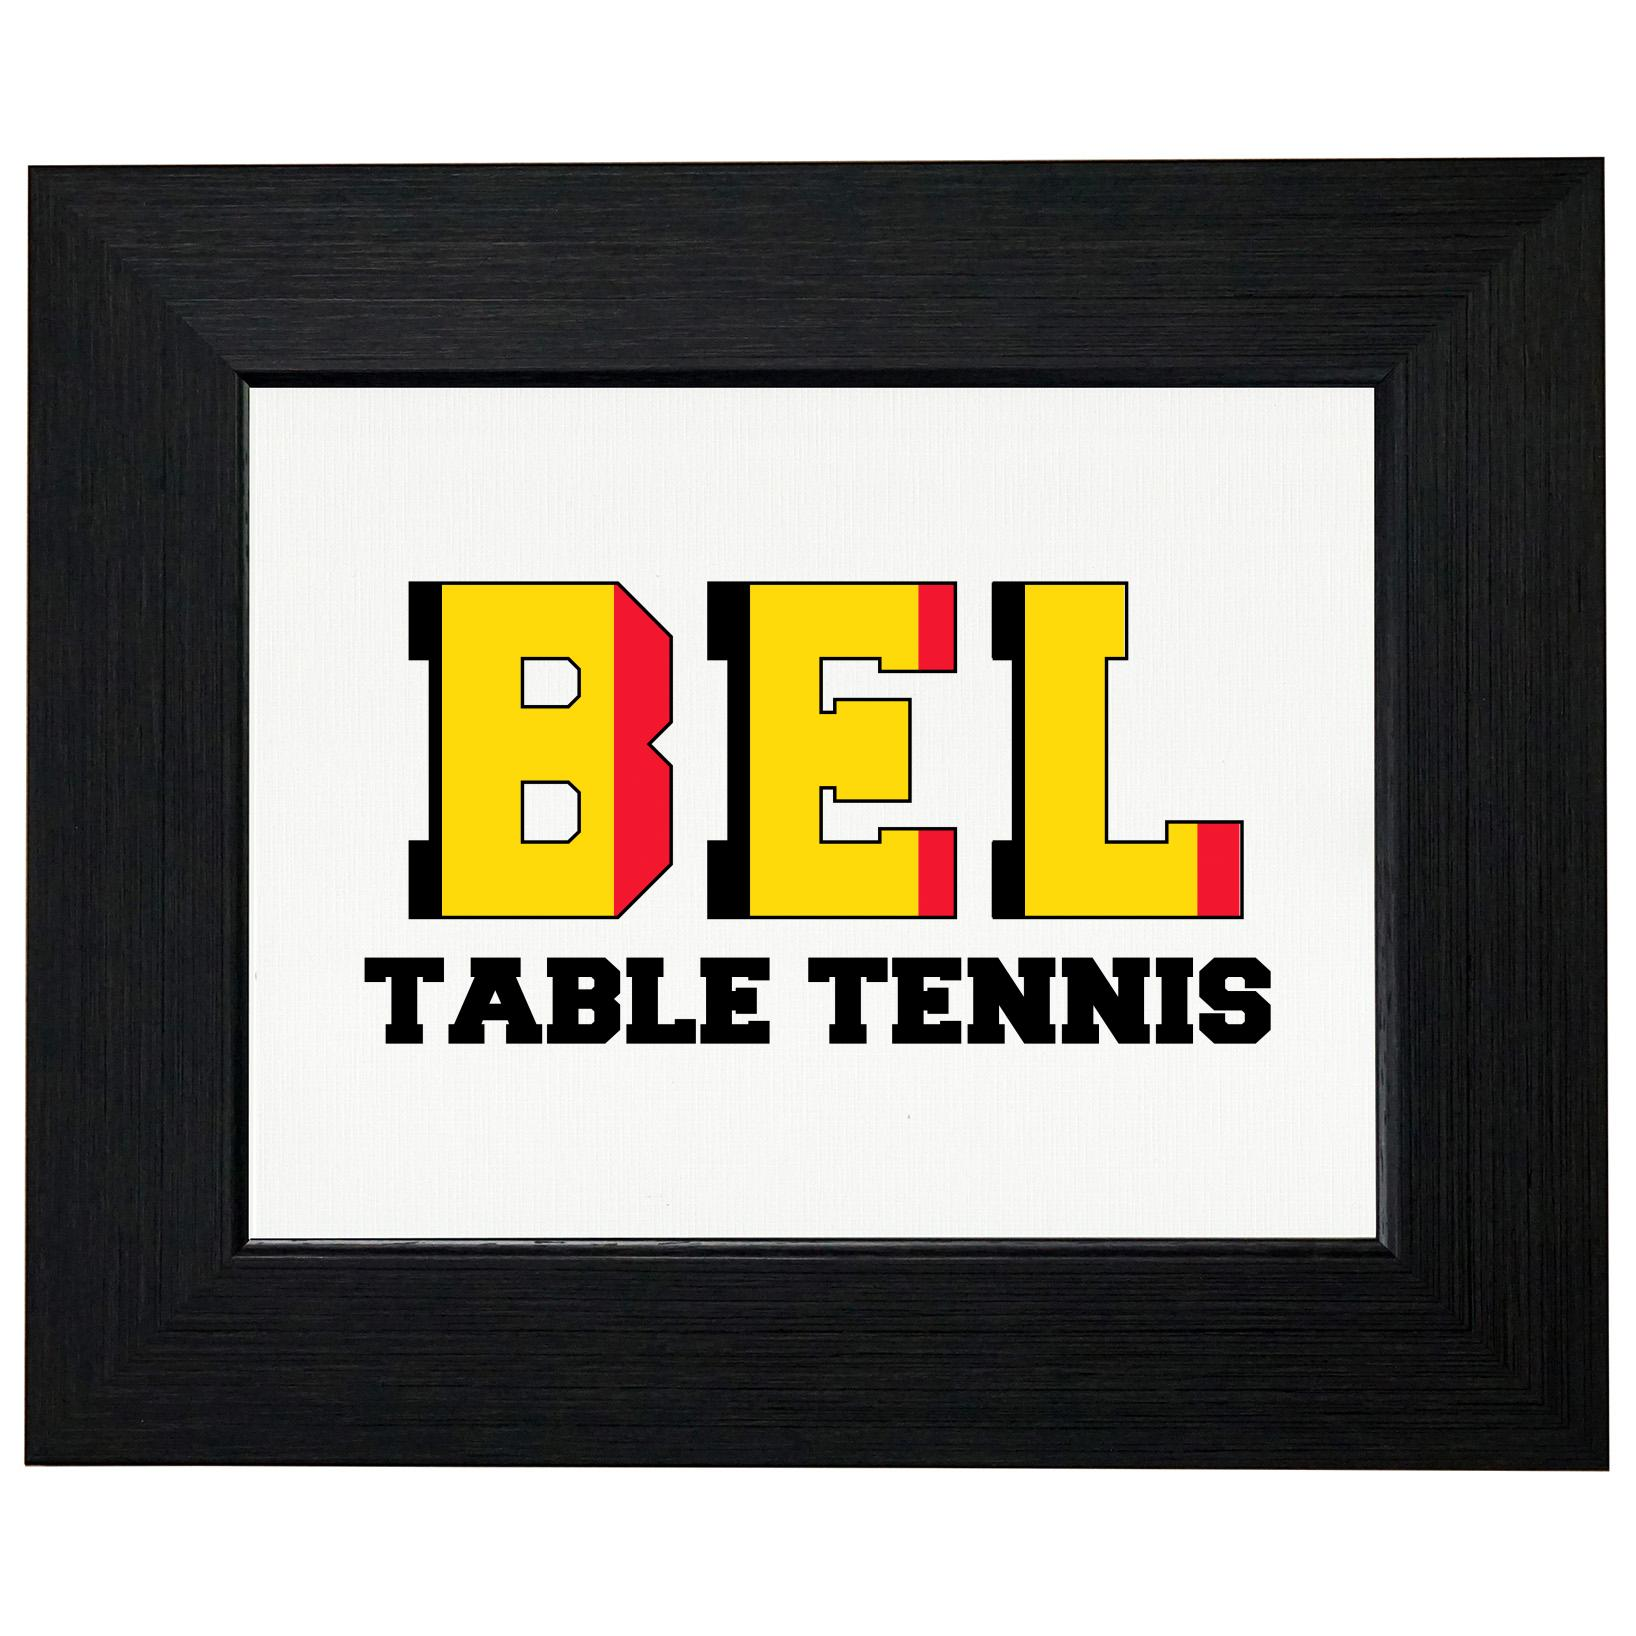 Belgium Ping Pong Olympic Games Rio Flag Framed Print Poster Wall or Desk Mount Options by Royal Prints